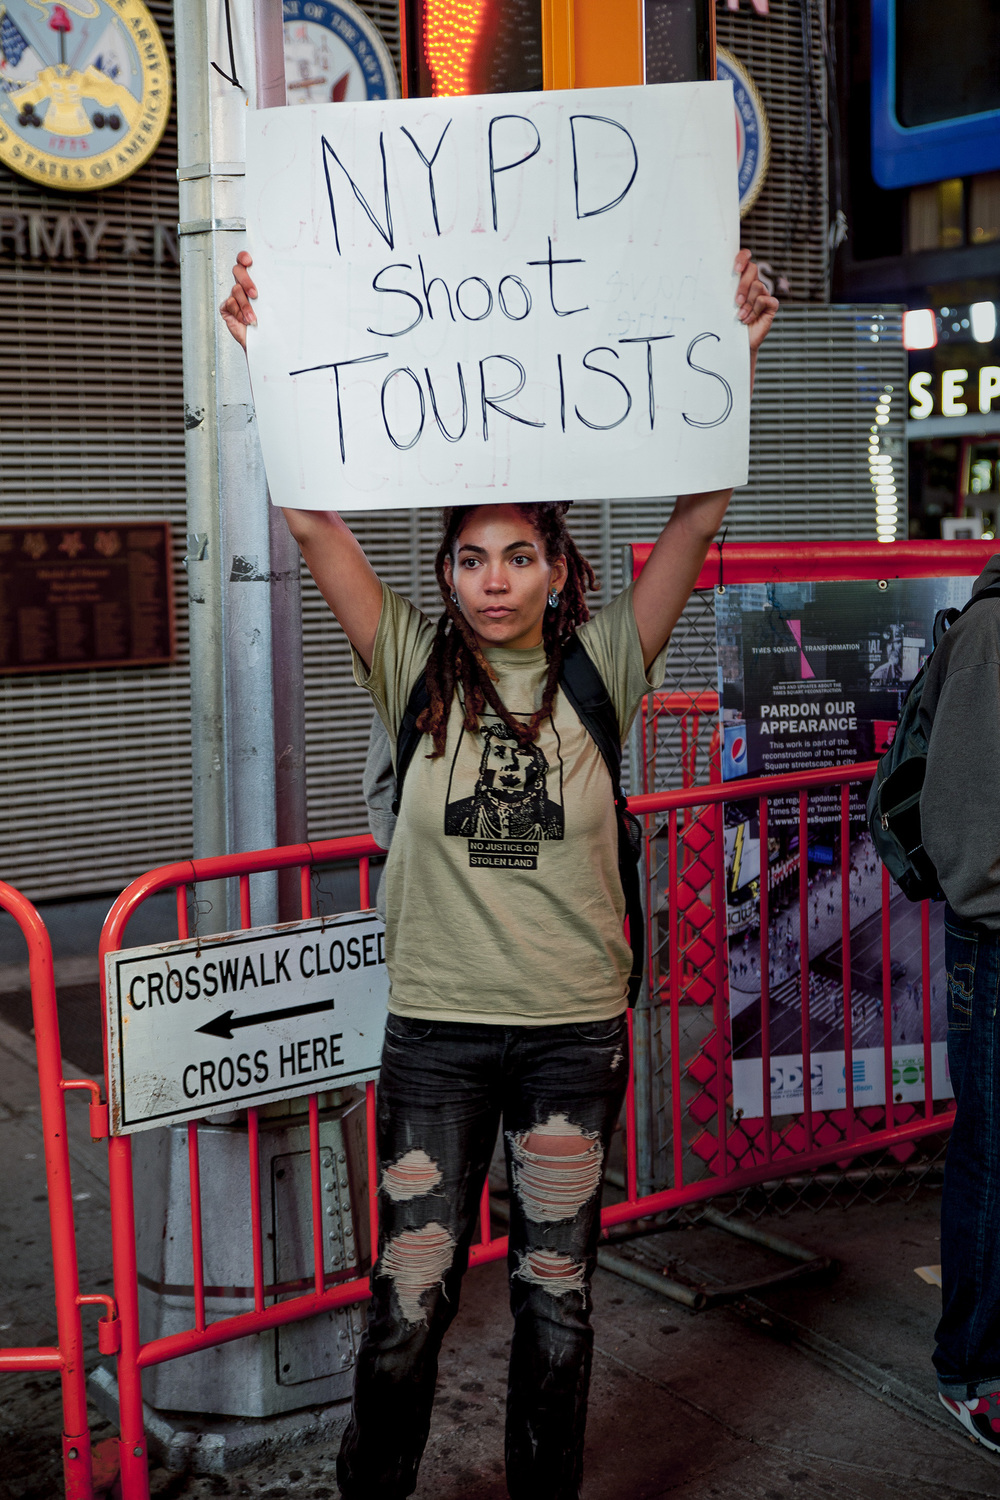 September, 2013 - New York, U.S.A.   Protester in Times Square where earlier police fired upon Glenn Broadnax, 35, of Brooklyn, who was later found to be unarmed. Broadnax was unharmed however two tourist bystanders were wounded